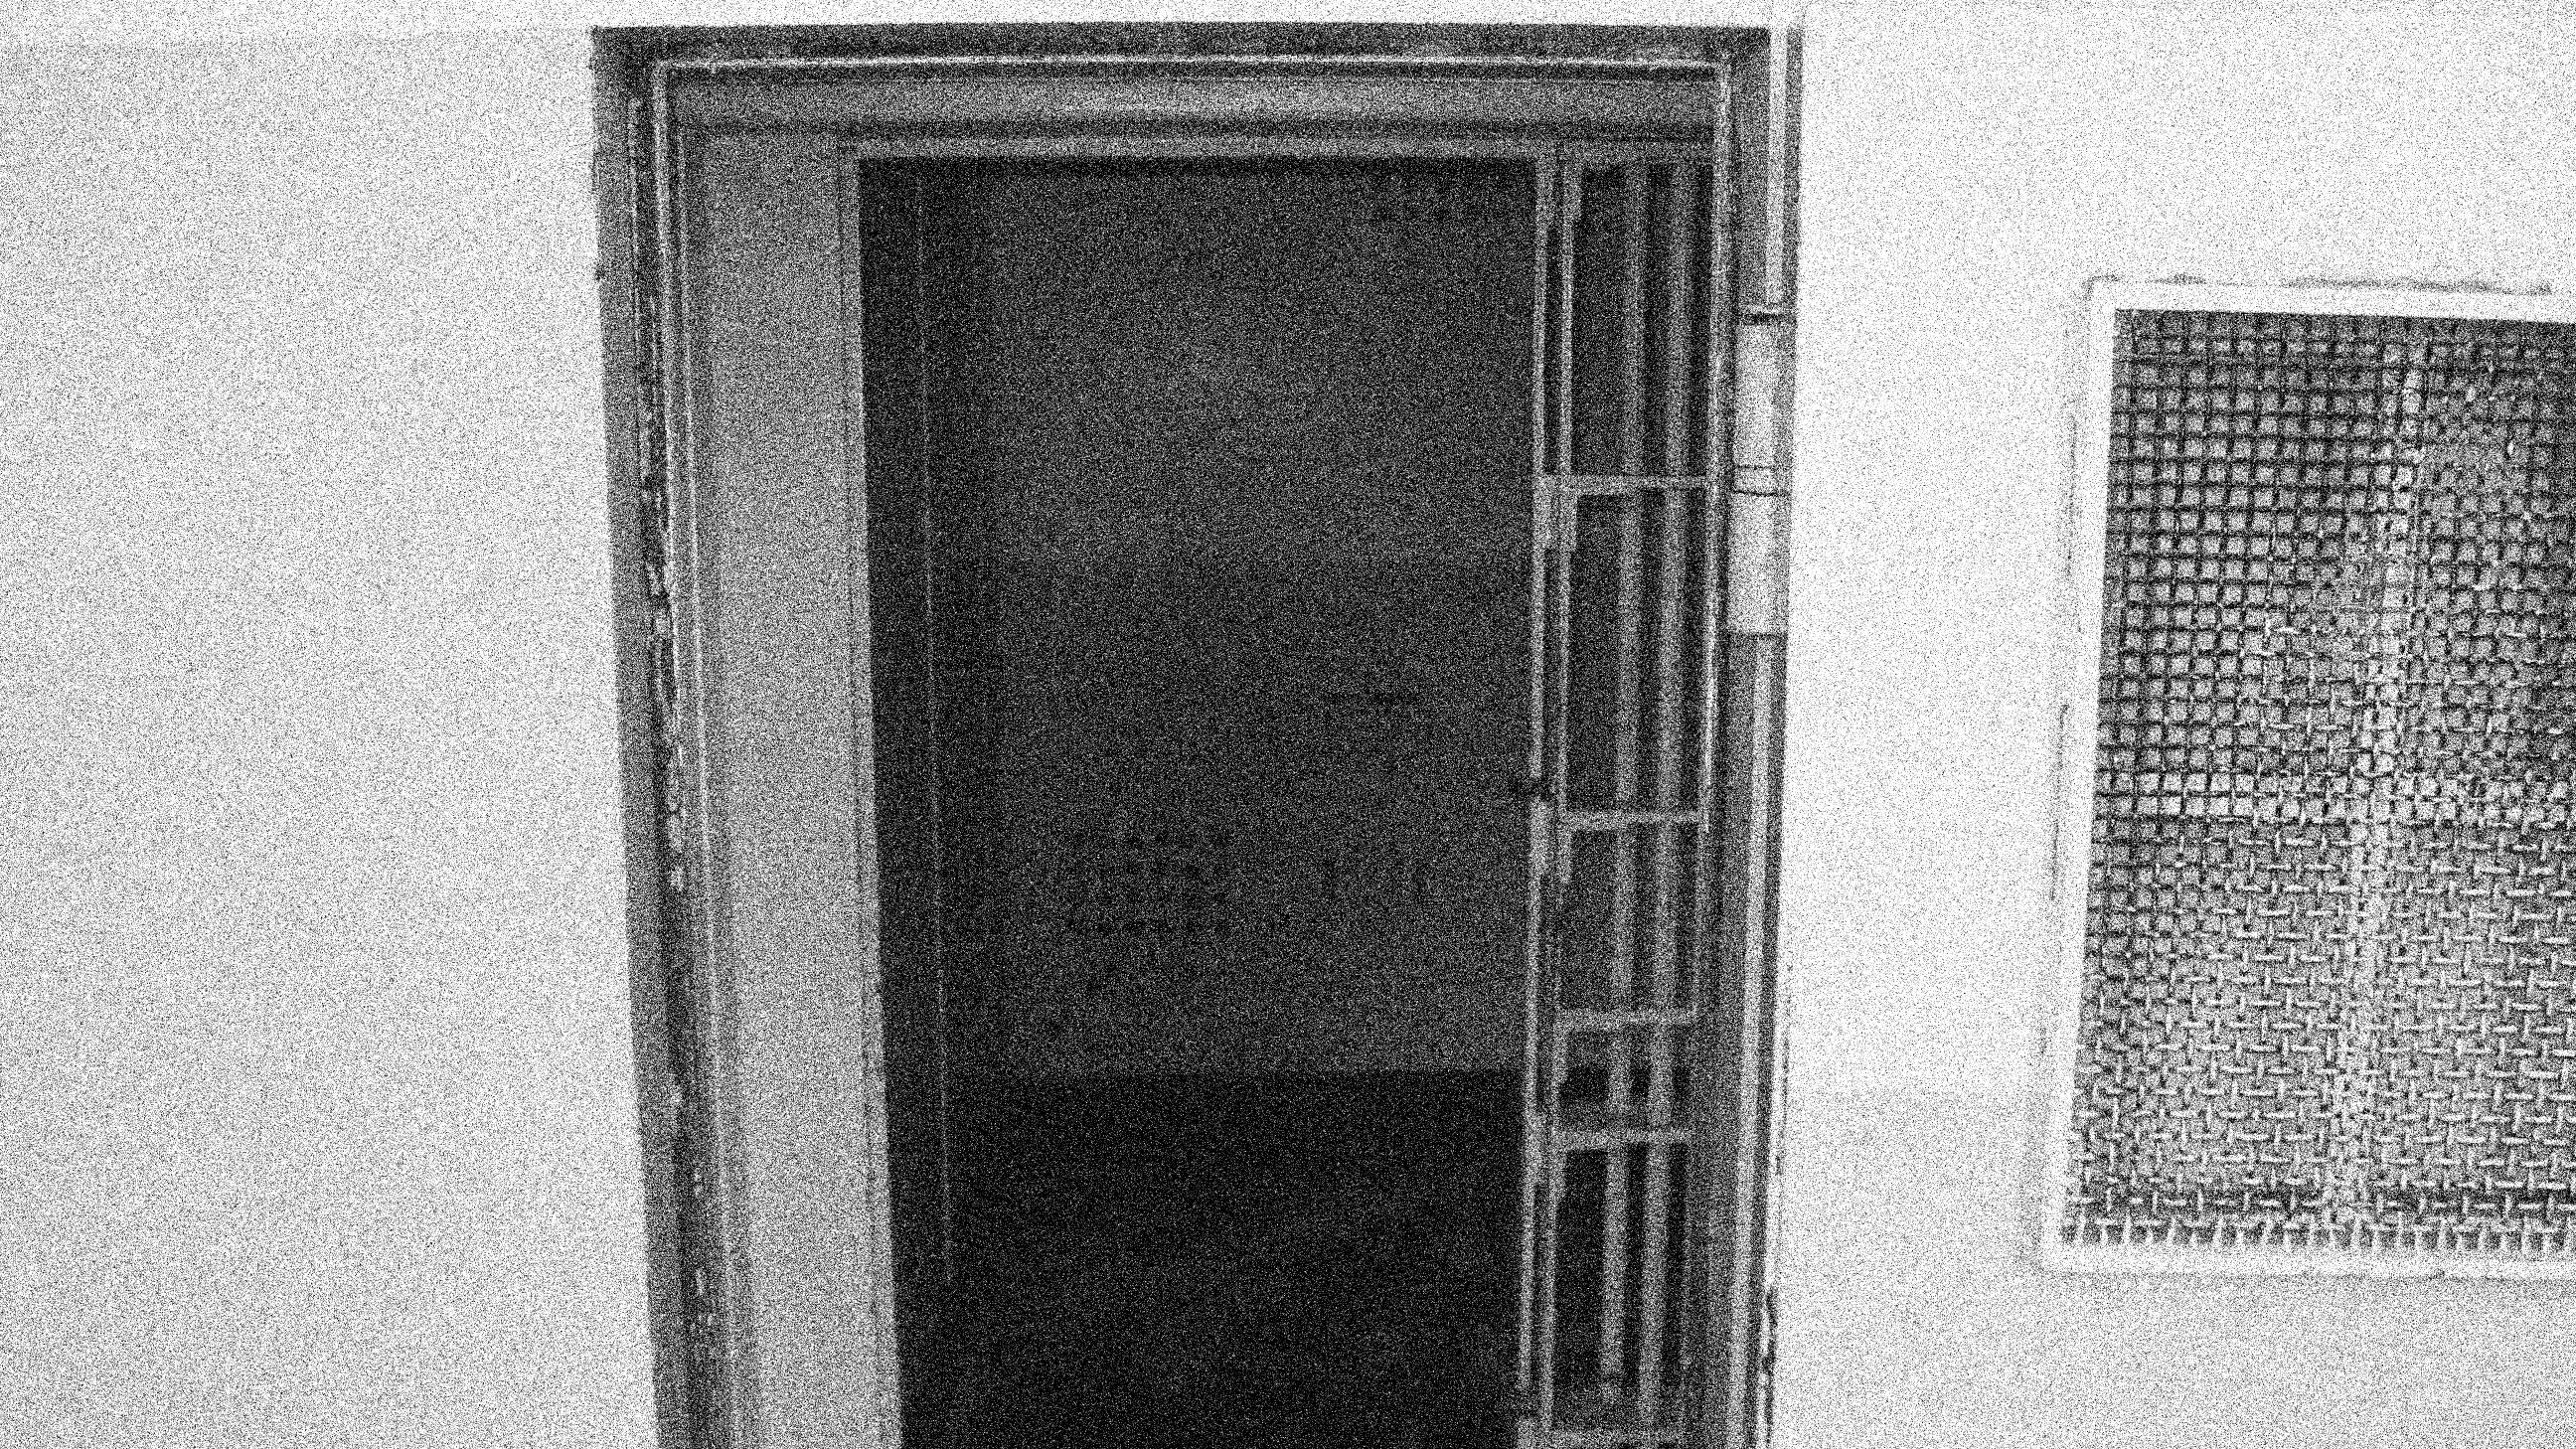 Solitary jail cell